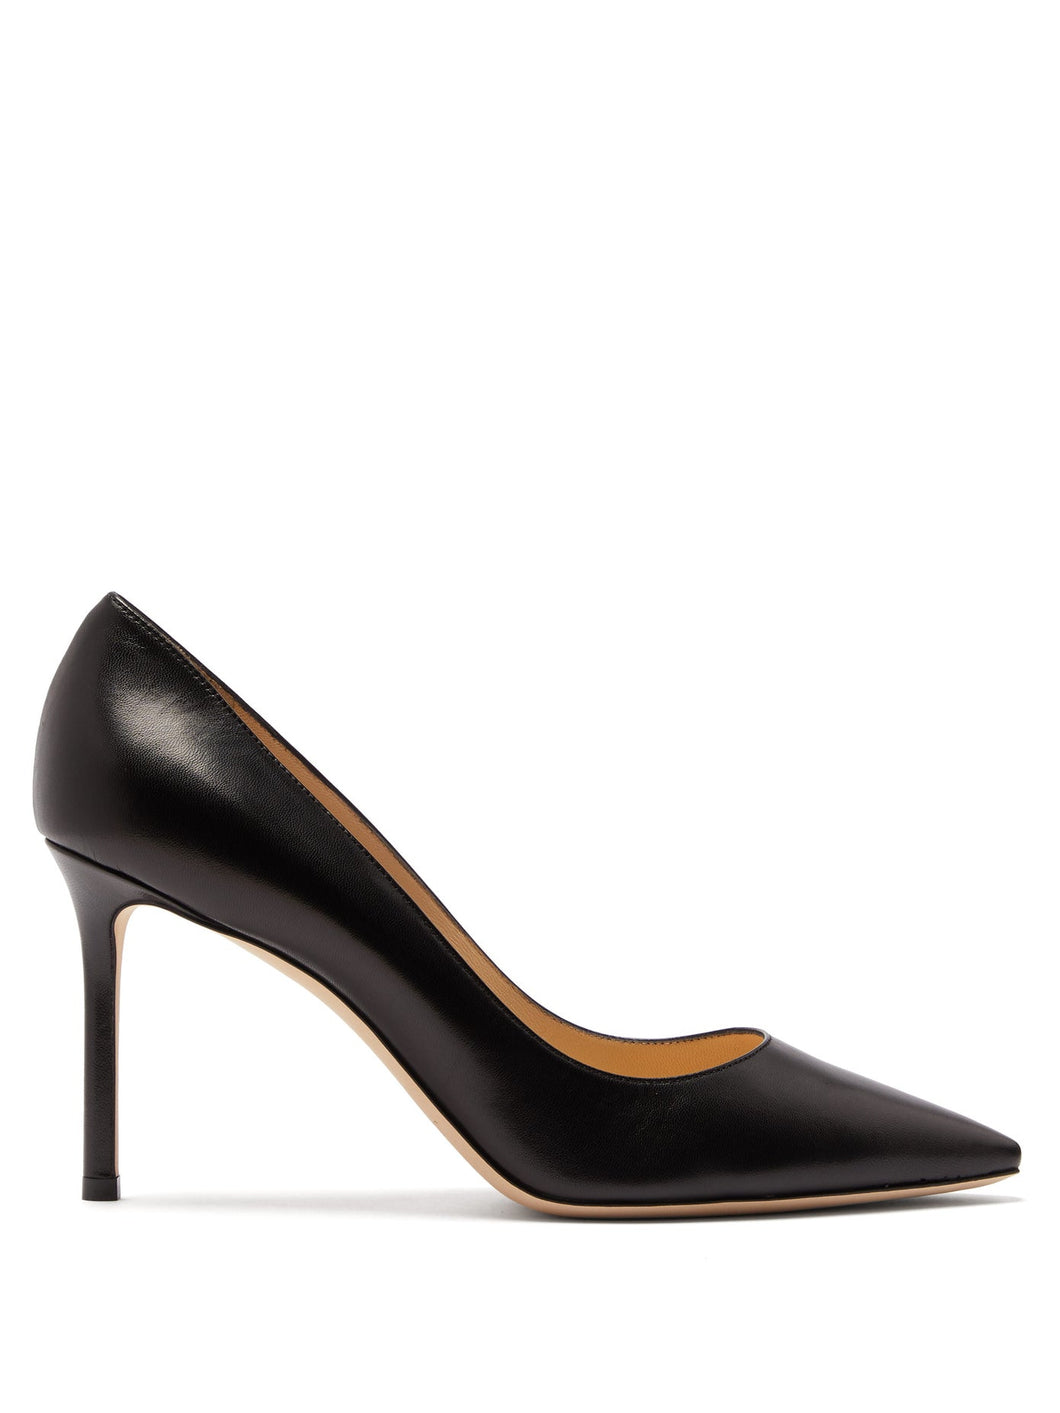 Romy 85 leather pumps